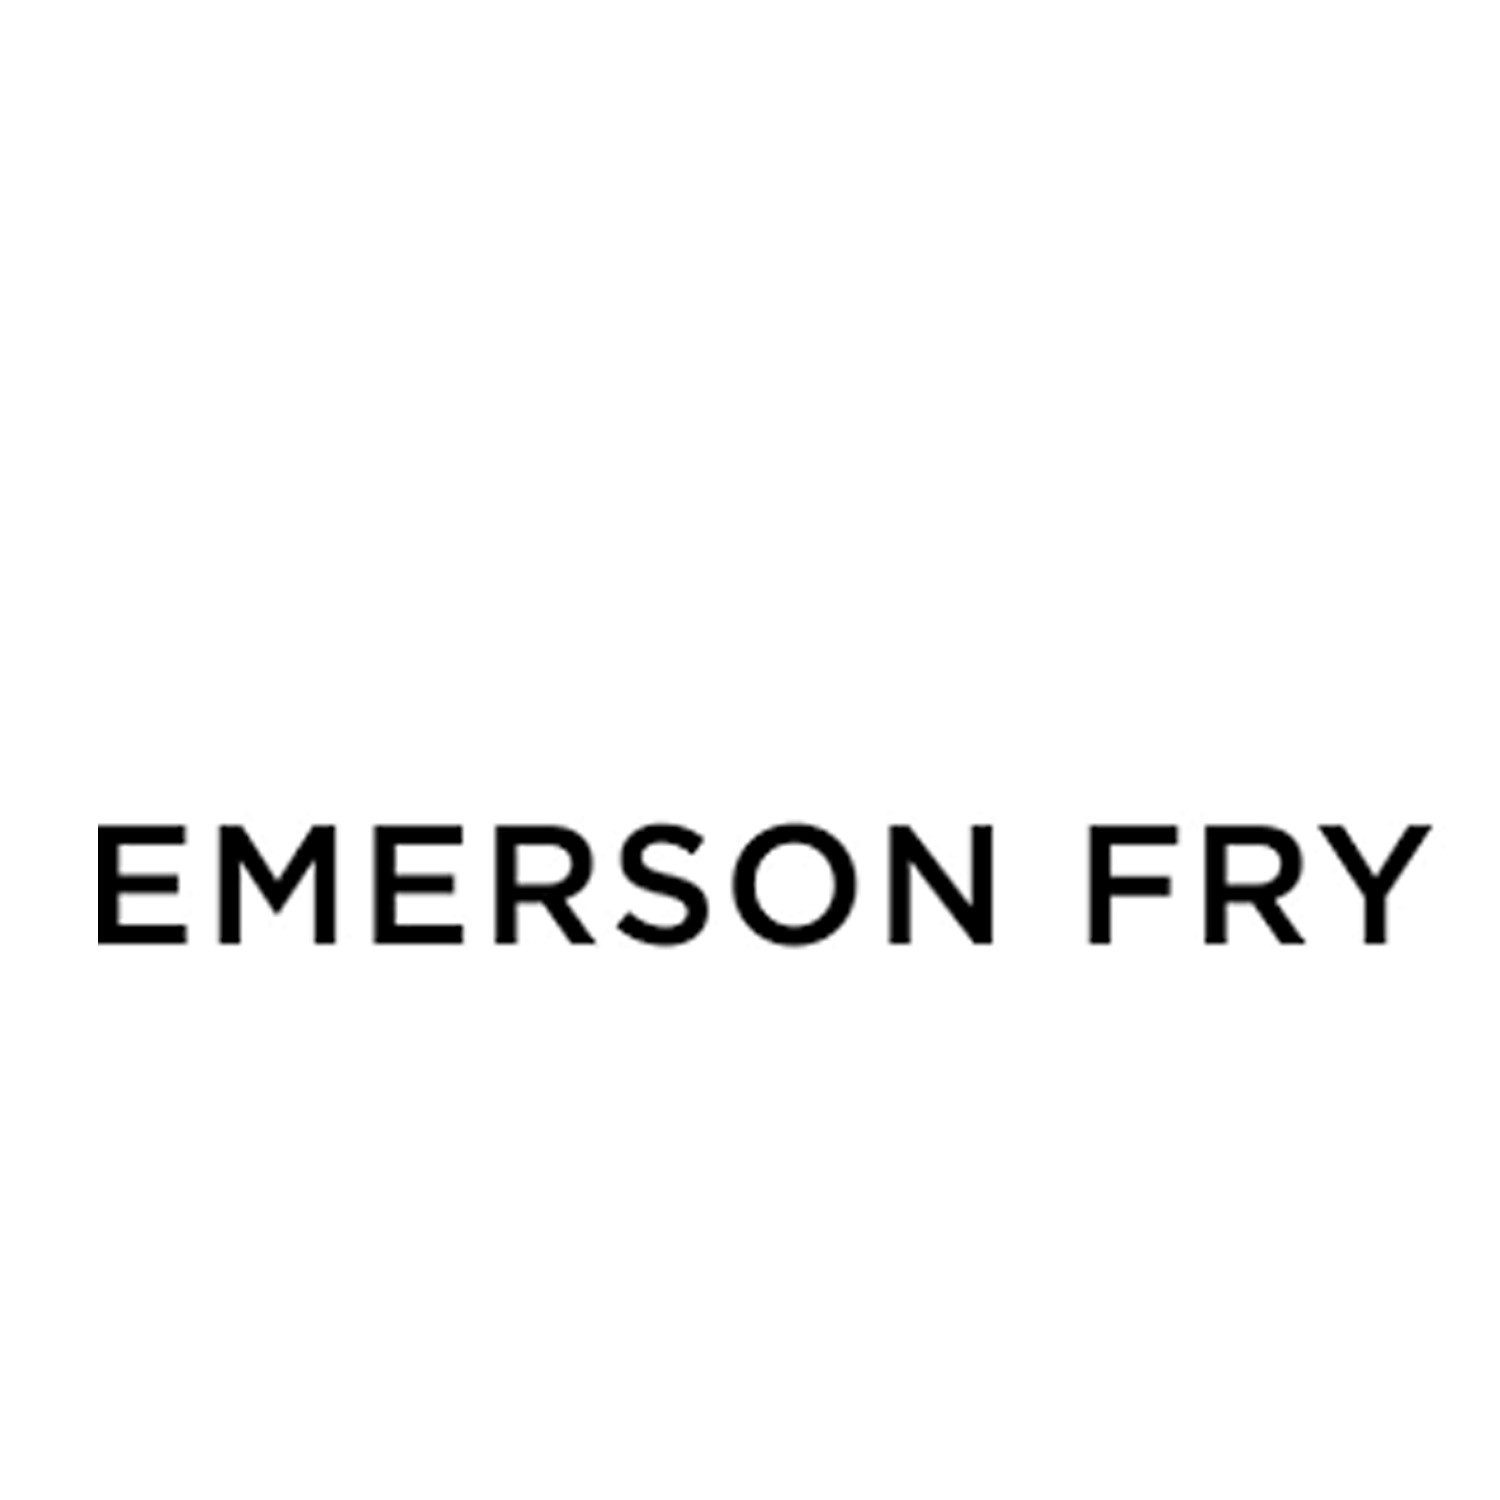 EMERSON FRY  Beautiful, strong, functional pieces for women that enhance enjoyment of life. They produced smaller capsule collections using heritage techniques from carefully selected spots around the world. (USA)